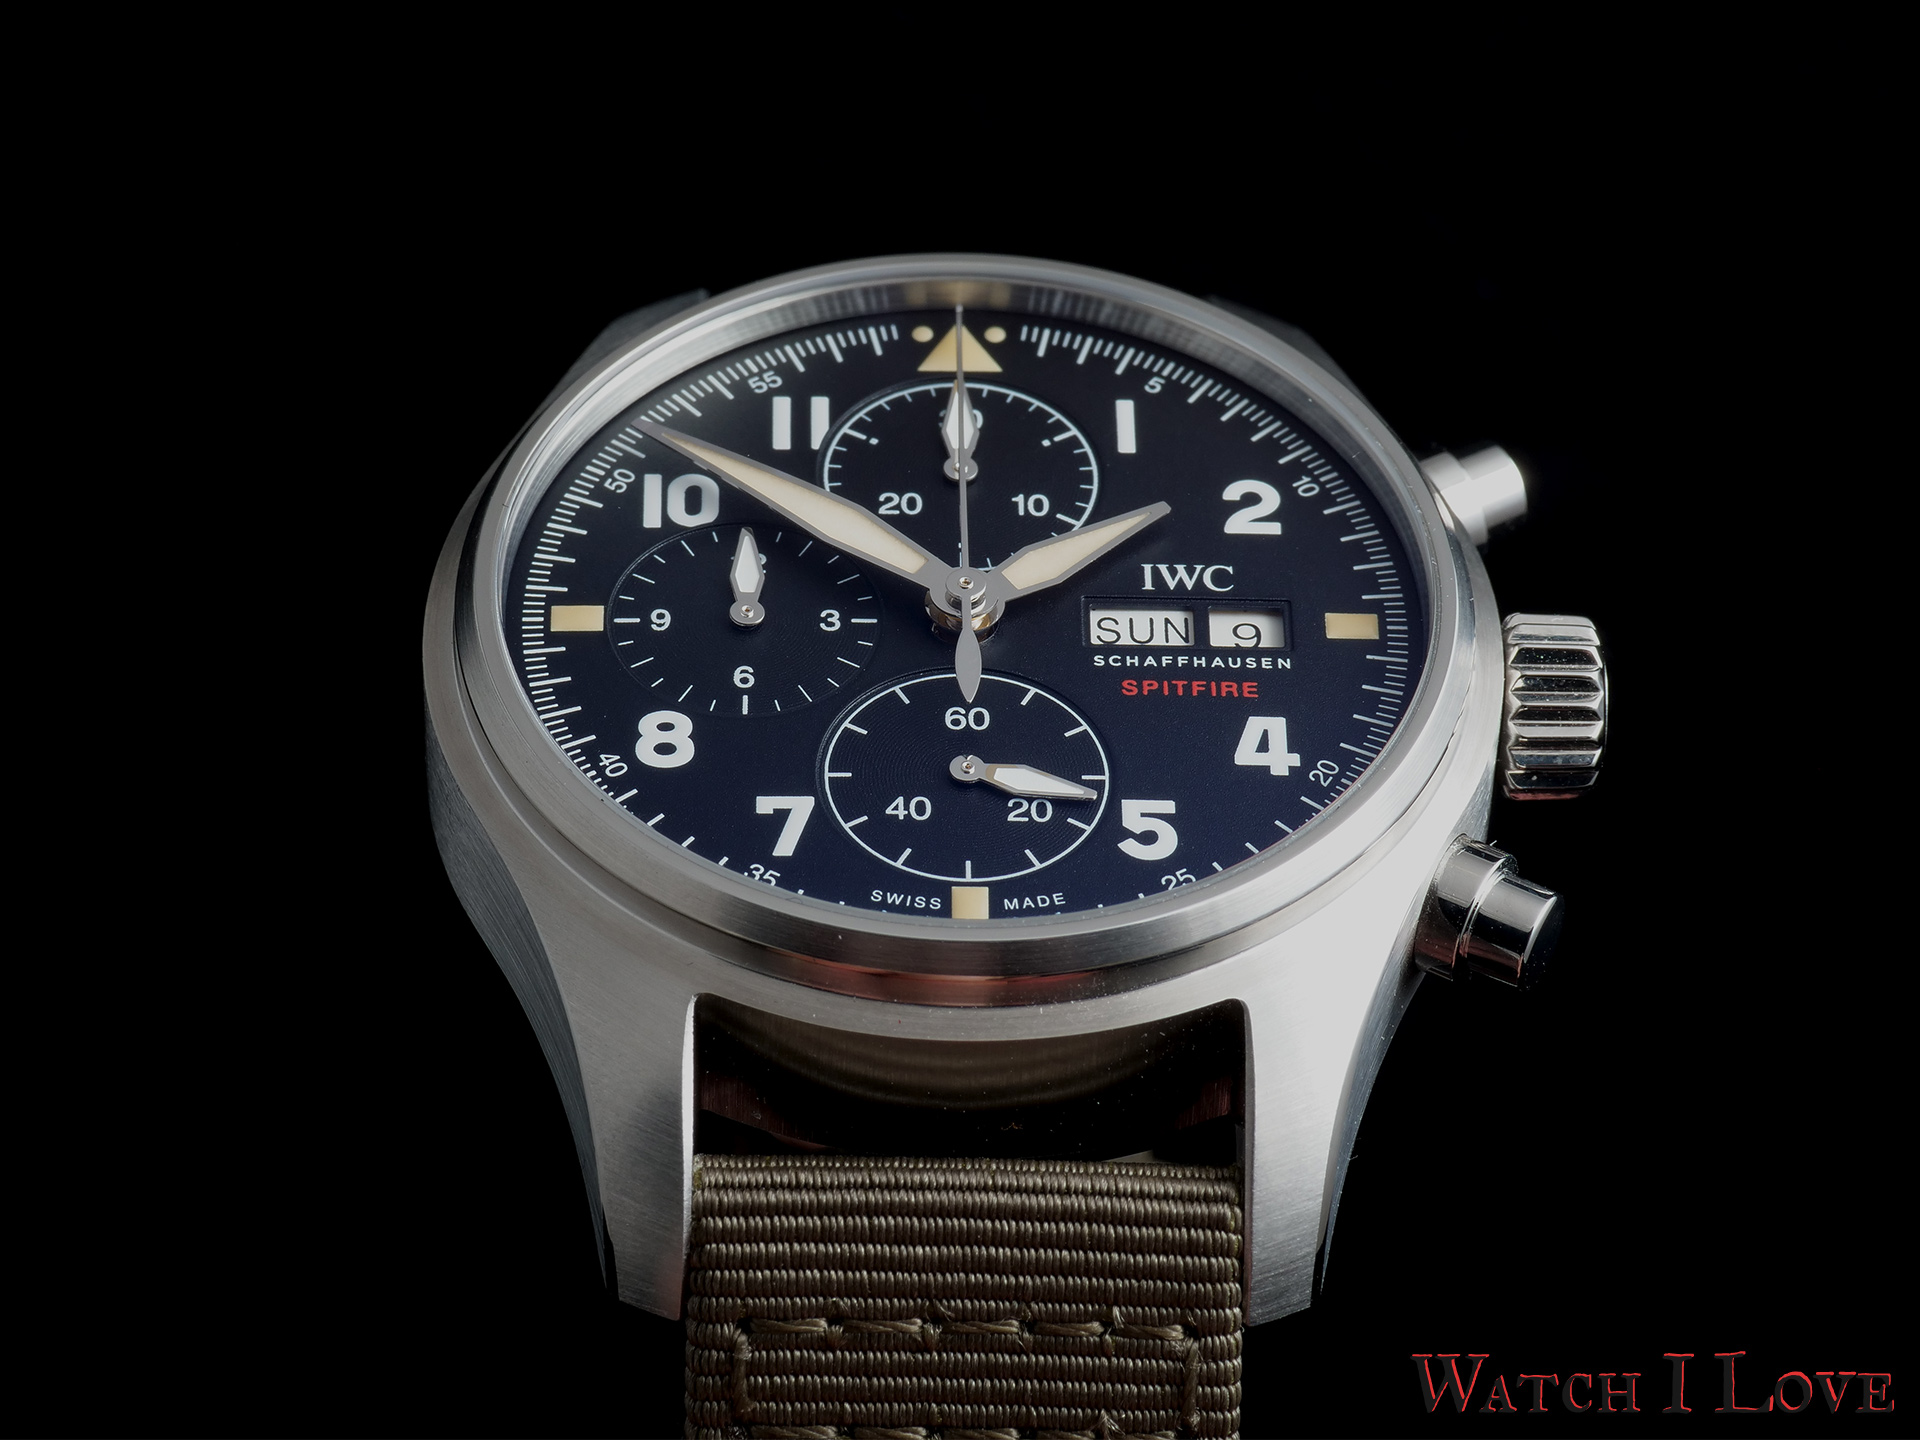 IWC Pilot's Watch Chronograph Spitfire Ref. IW387901 soldat